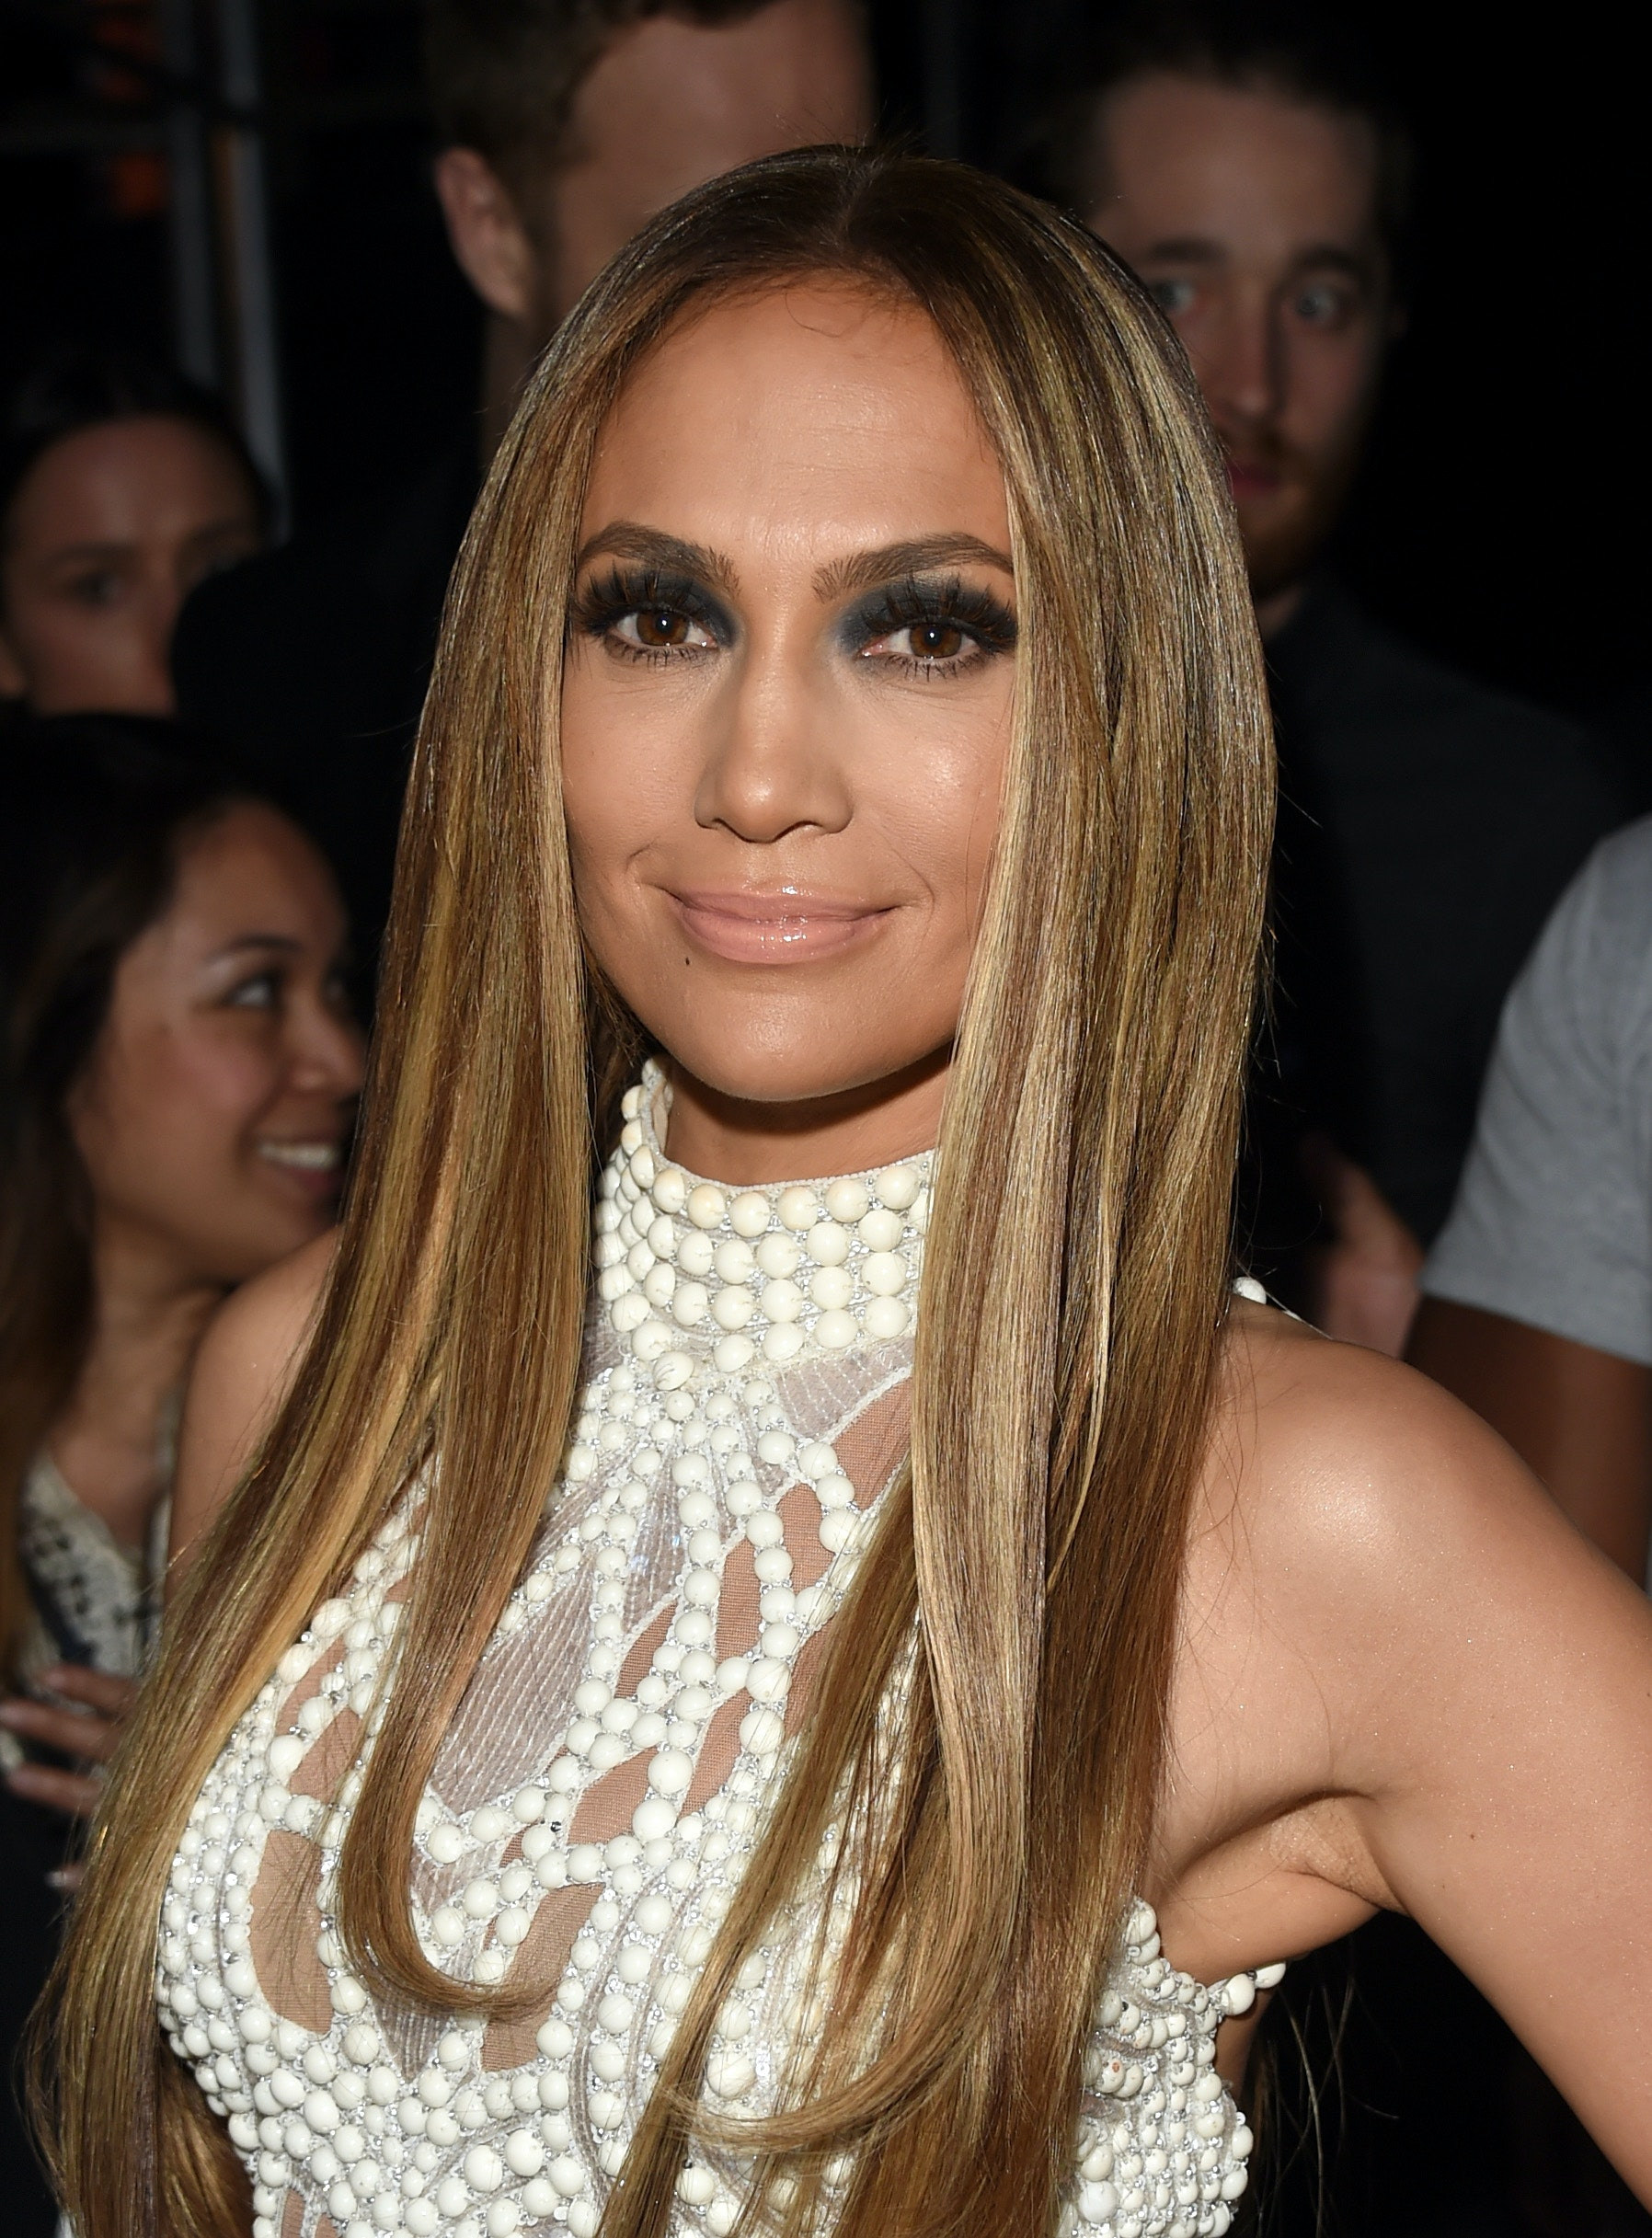 How To Dye Brown Hair Blonde 7 Expert Tips To Ensure You Don T Have